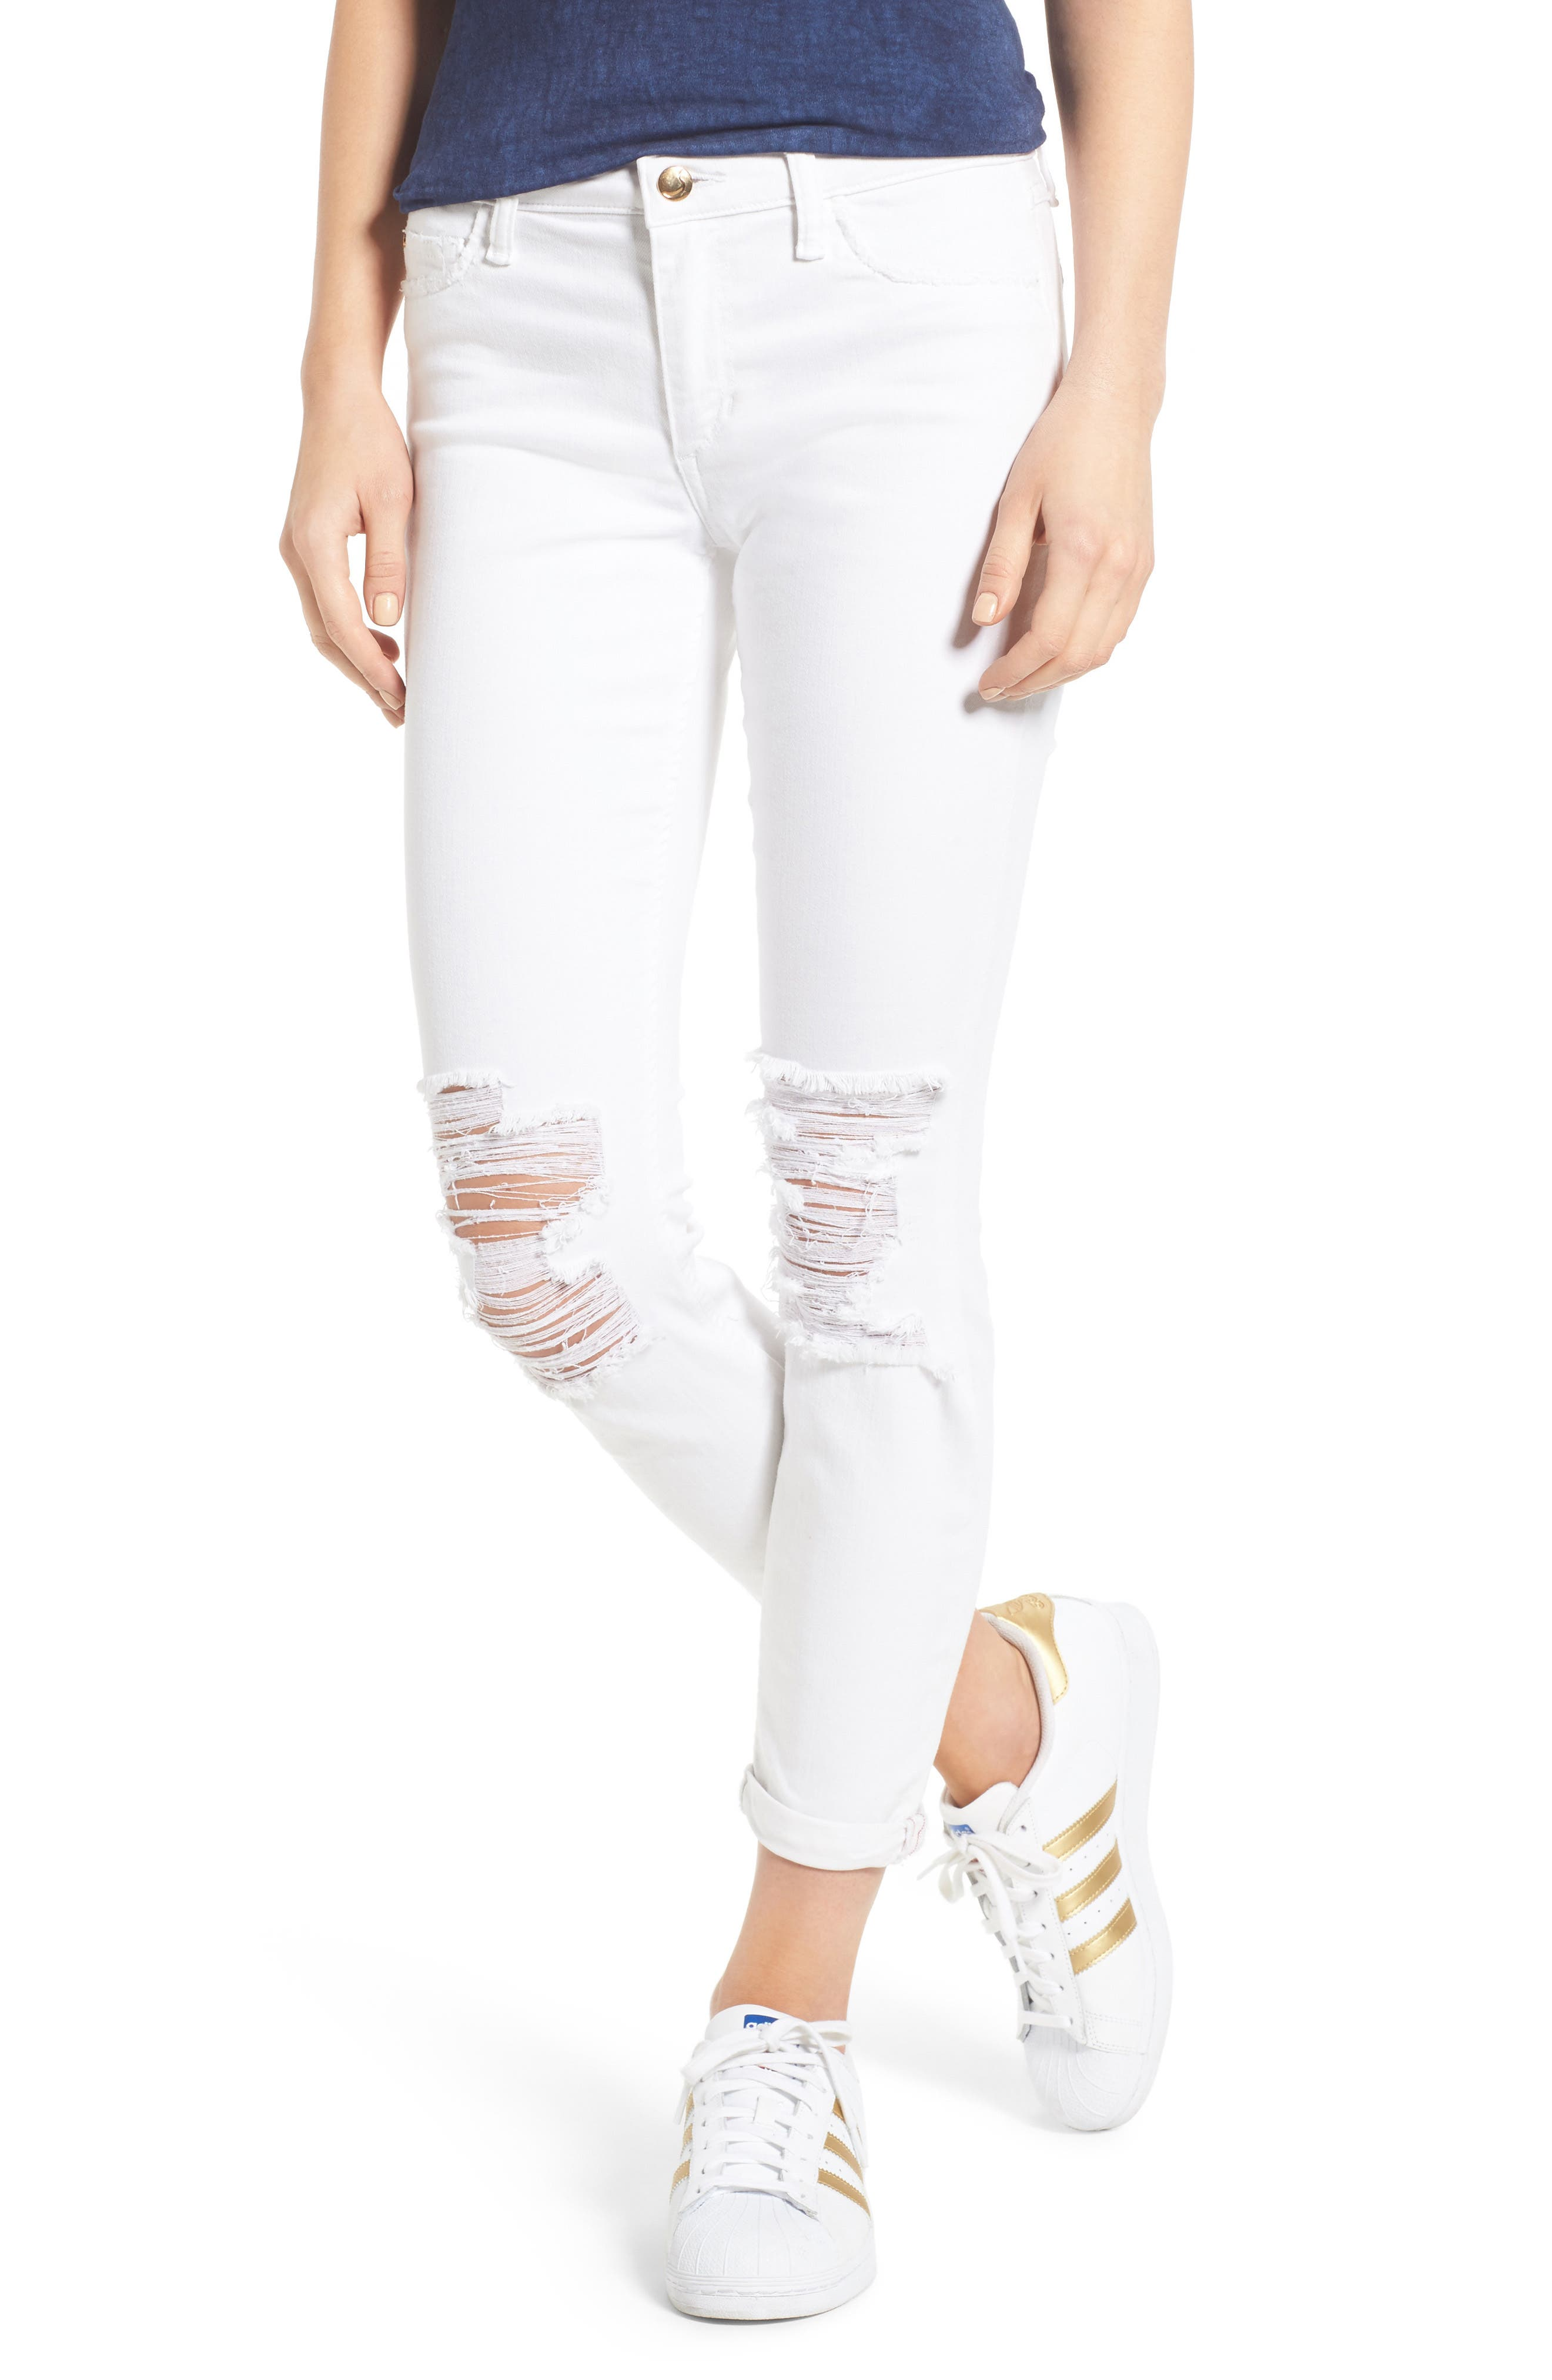 Andie Crop Skinny Jeans,                             Main thumbnail 1, color,